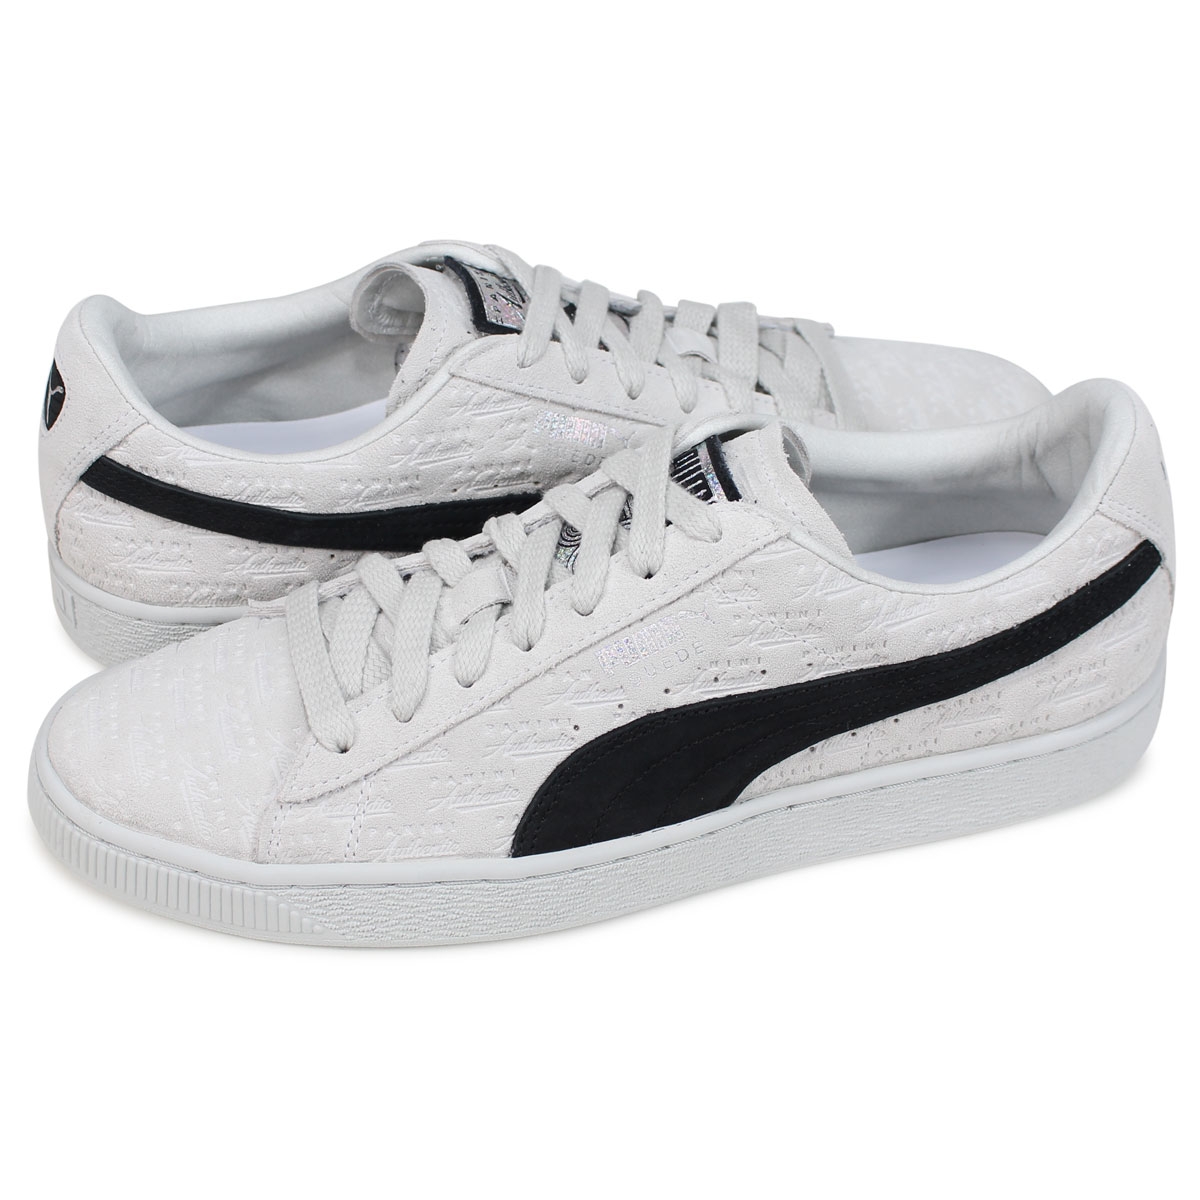 günstiger Preis neueste Art von 2019 echt PUMA SUEDE CLASSIC Puma suede cloth classical music sneakers men gap Dis  Panini collaboration PANINI white 366,323-01 [191]